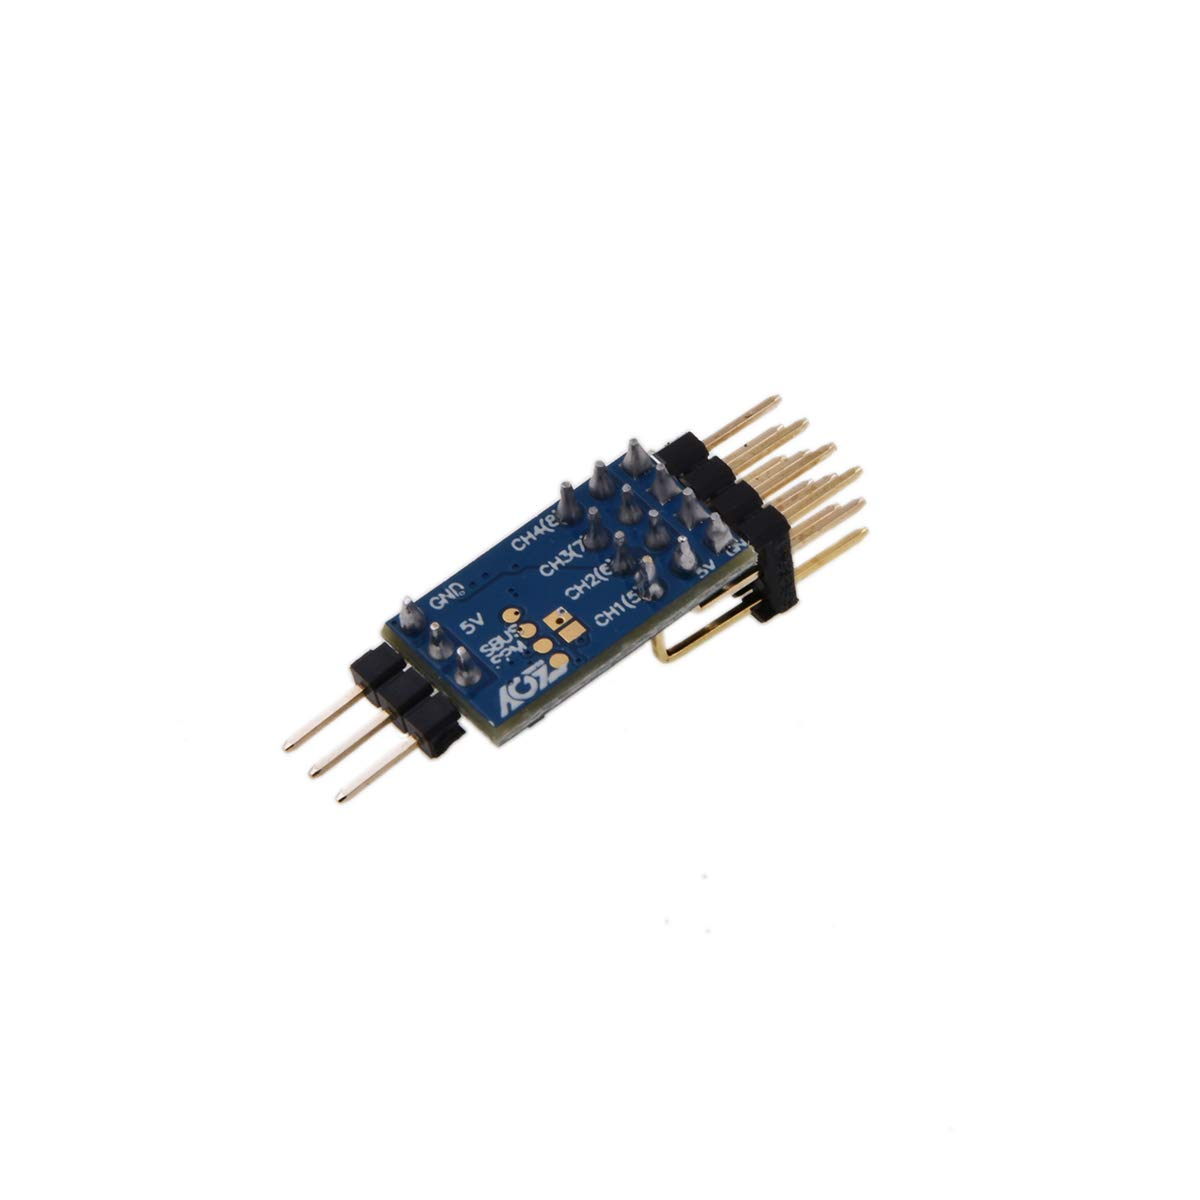 AGFrc Tiny Remote Control Signal Converter Automatically Identify and Decoding SBUS//PPM Series Signal,Output CH1-CH8 Remote Channel Signal Converter for Receiver